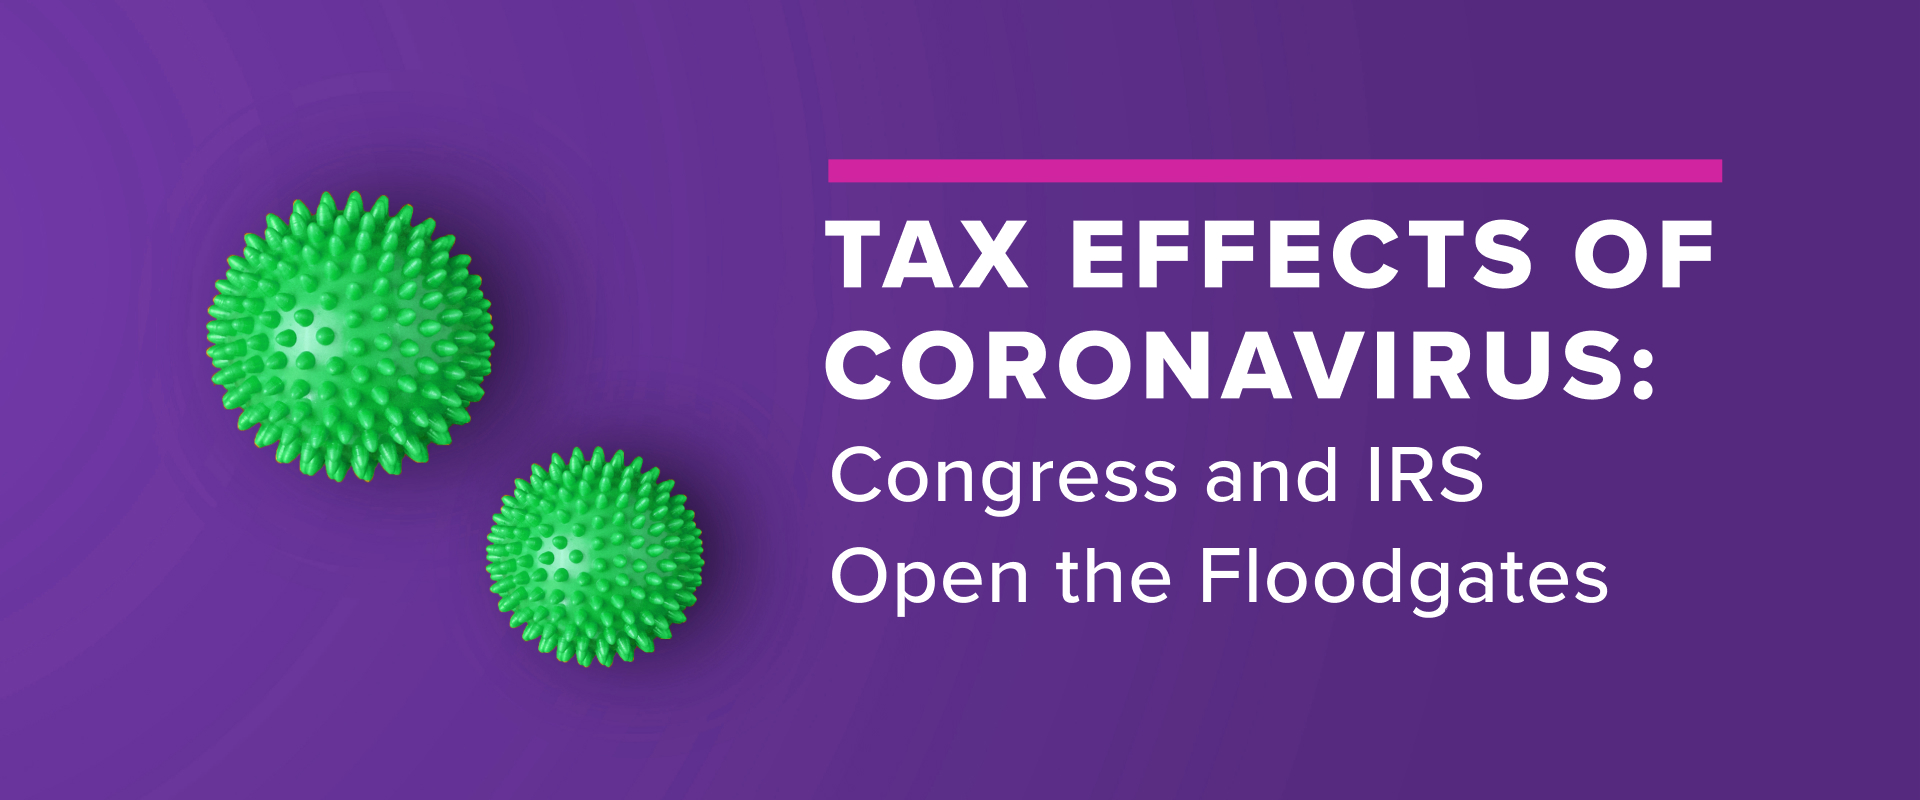 Tax Effects of Coronavirus & CARES Act: Congress and IRS Open the Floodgates